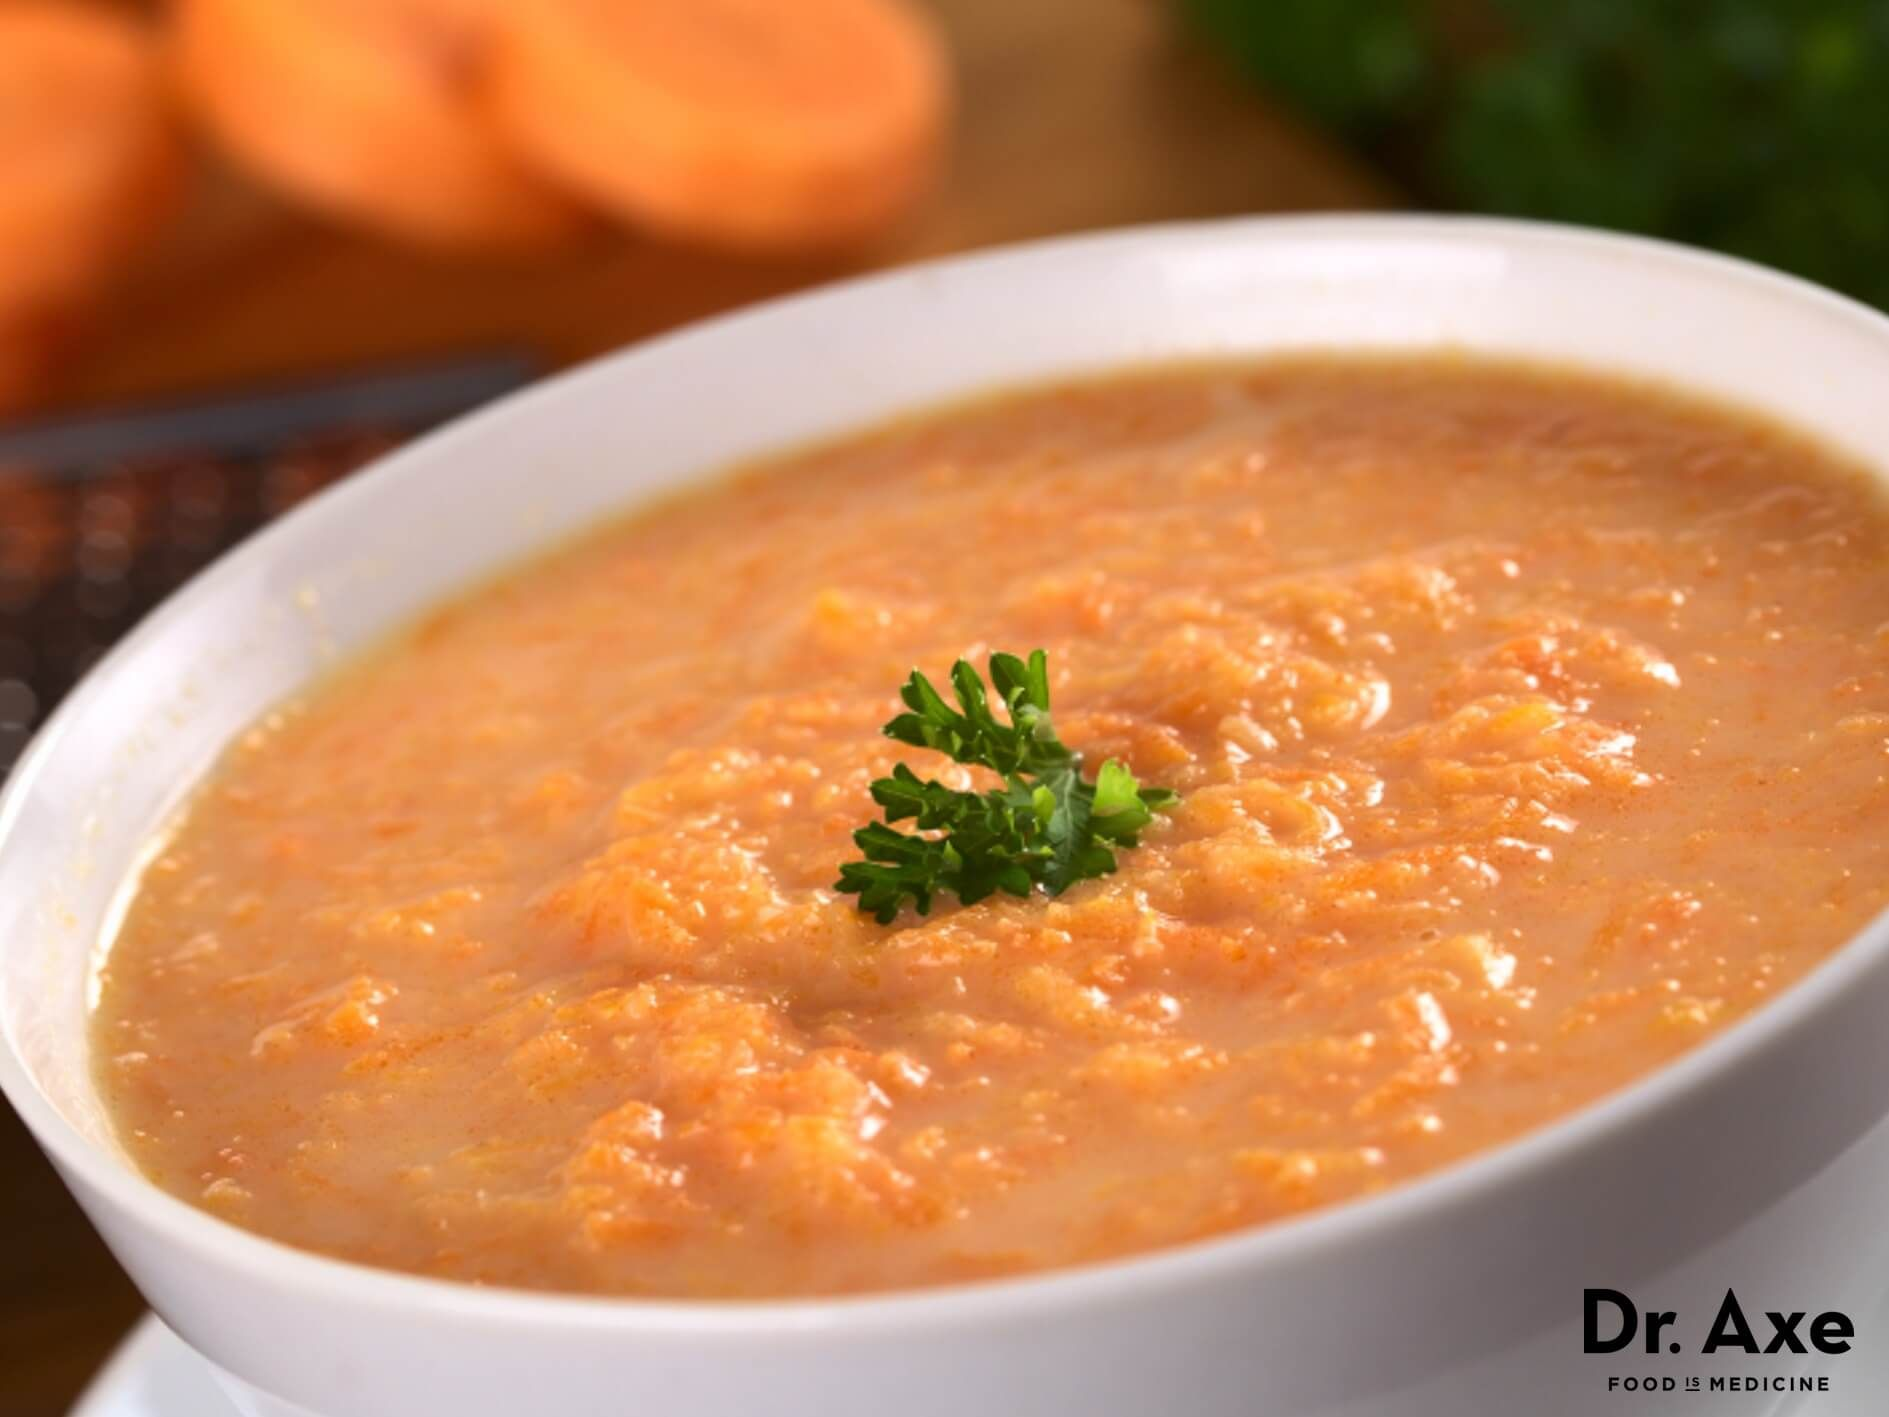 Curried Carrot Soup Recipe Dr Axe Curried Carrot Soup Carrot Soup Recipes Easy Soup Recipes Healthy